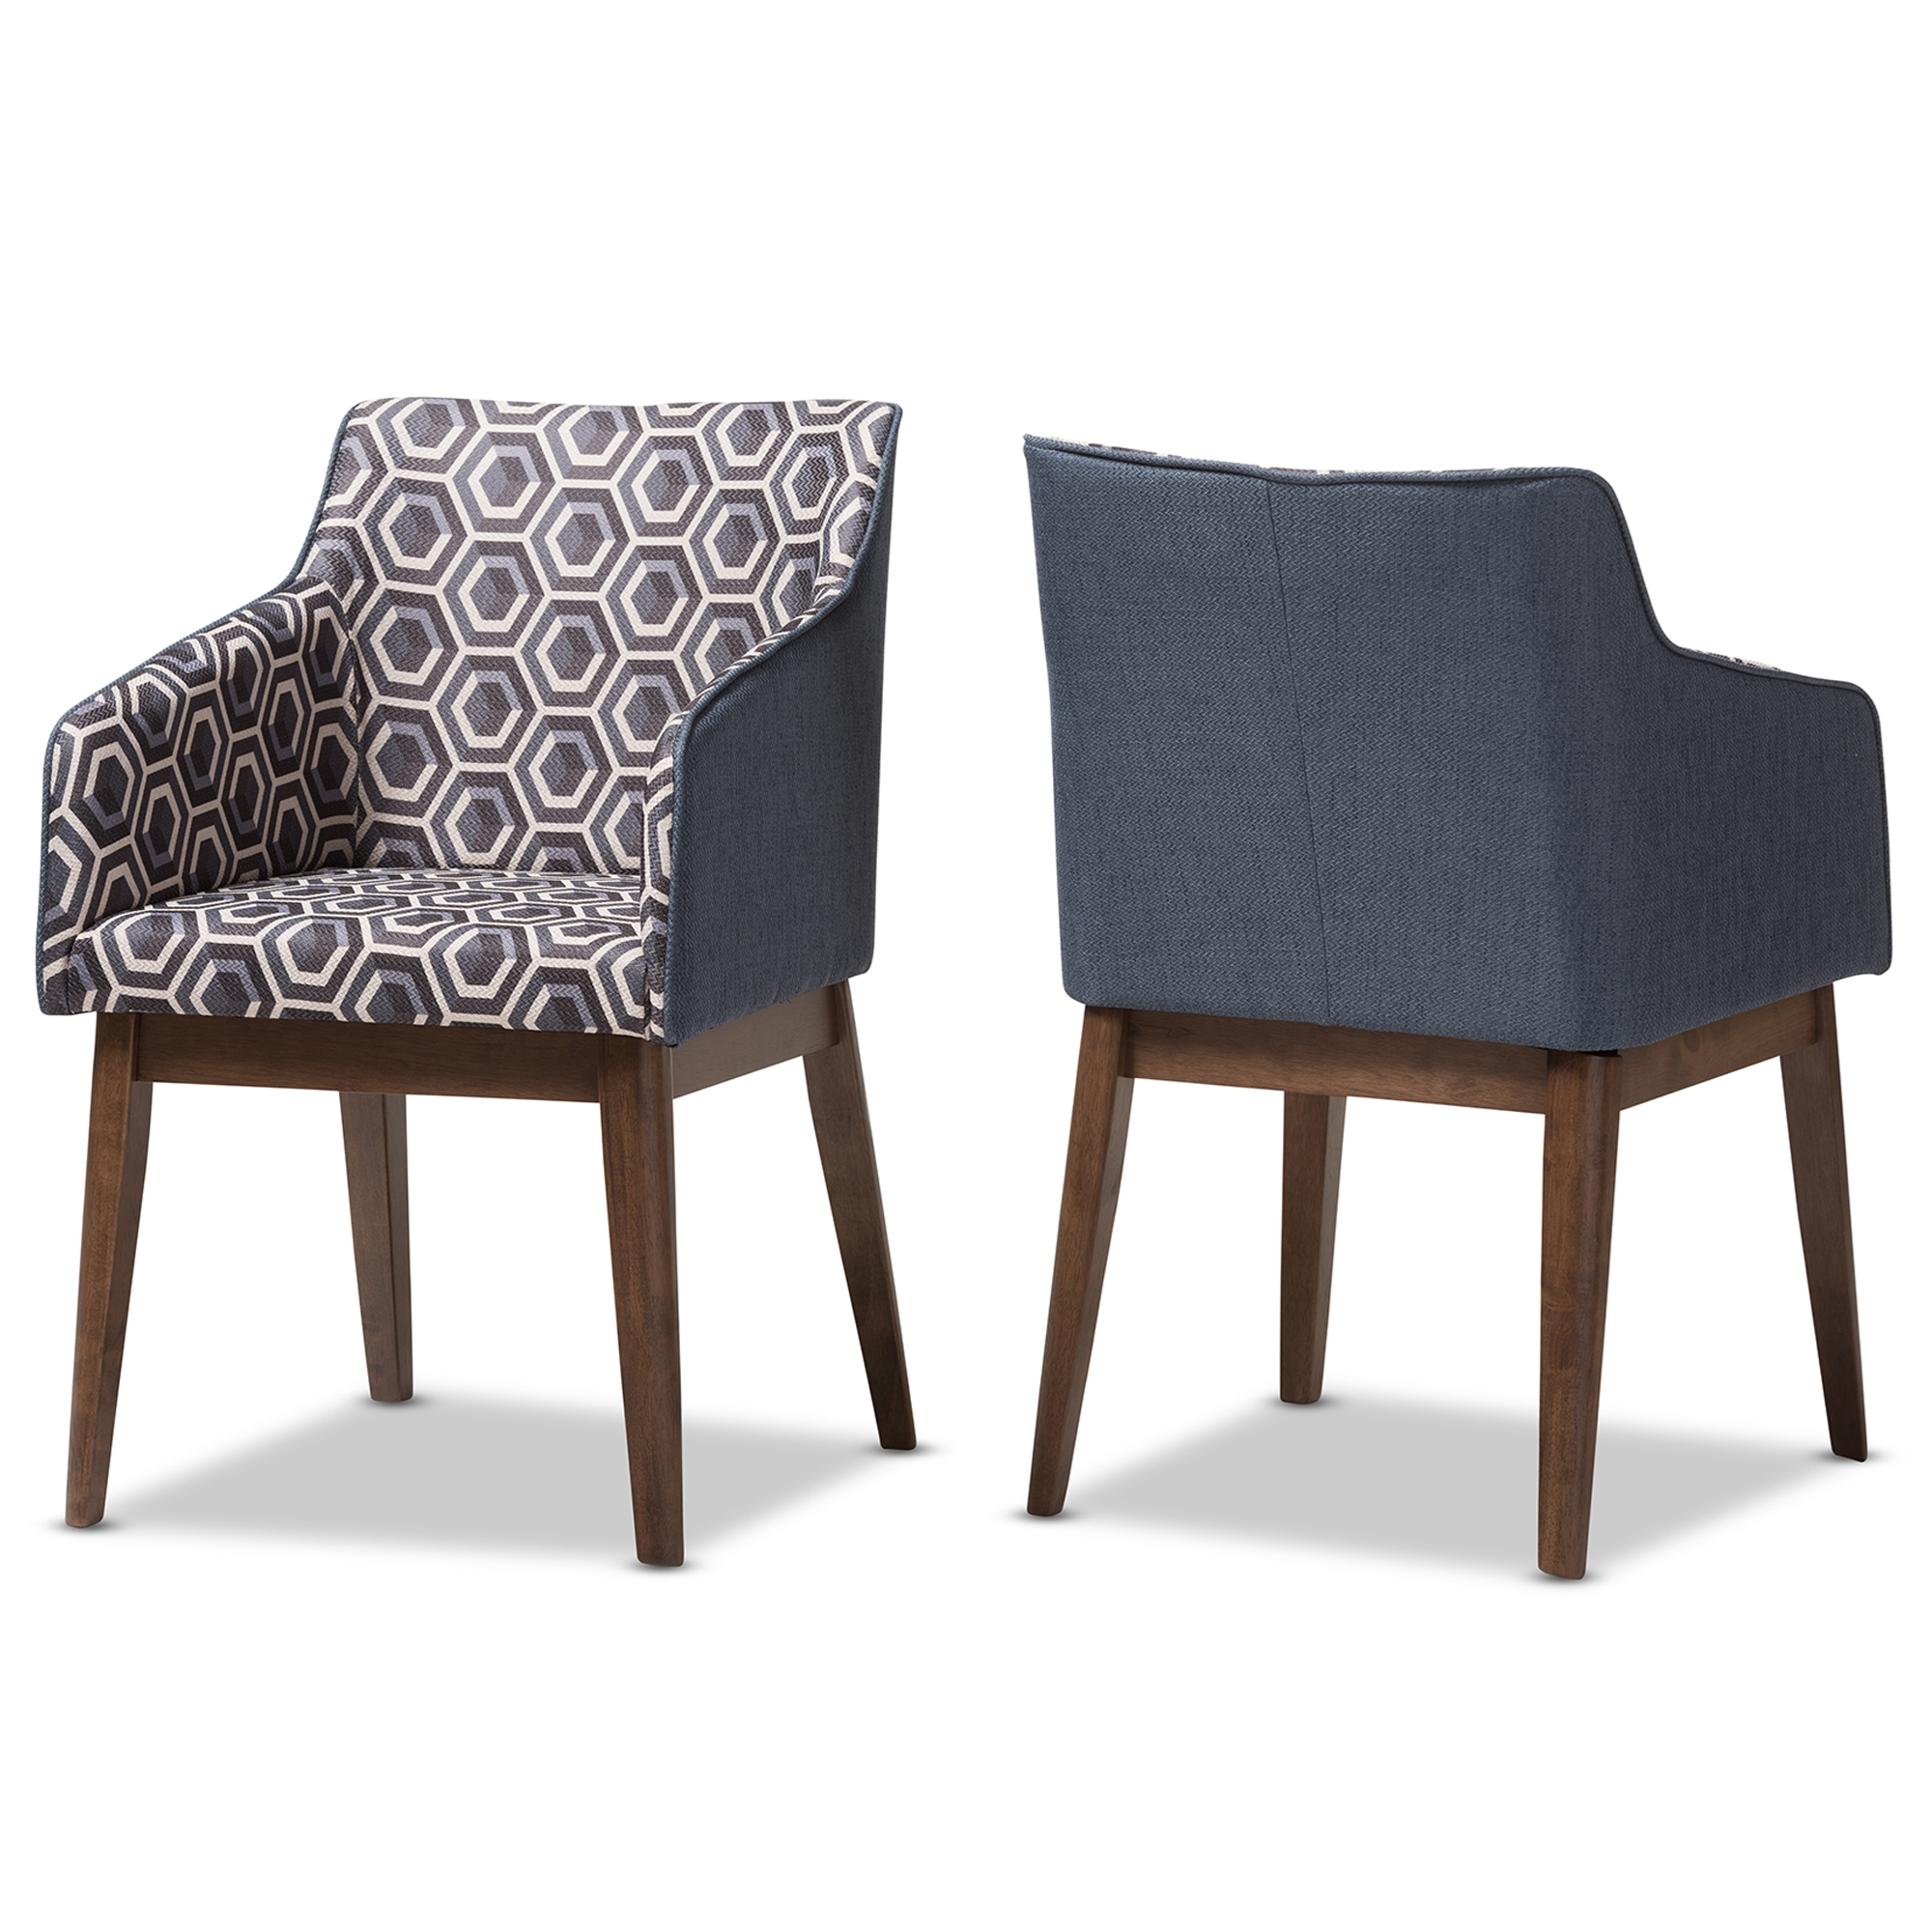 Superieur Baxton Studio Reece Mid Century Modern Dark Blue Patterned Fabric Lounge  Chair (Set Of 2)